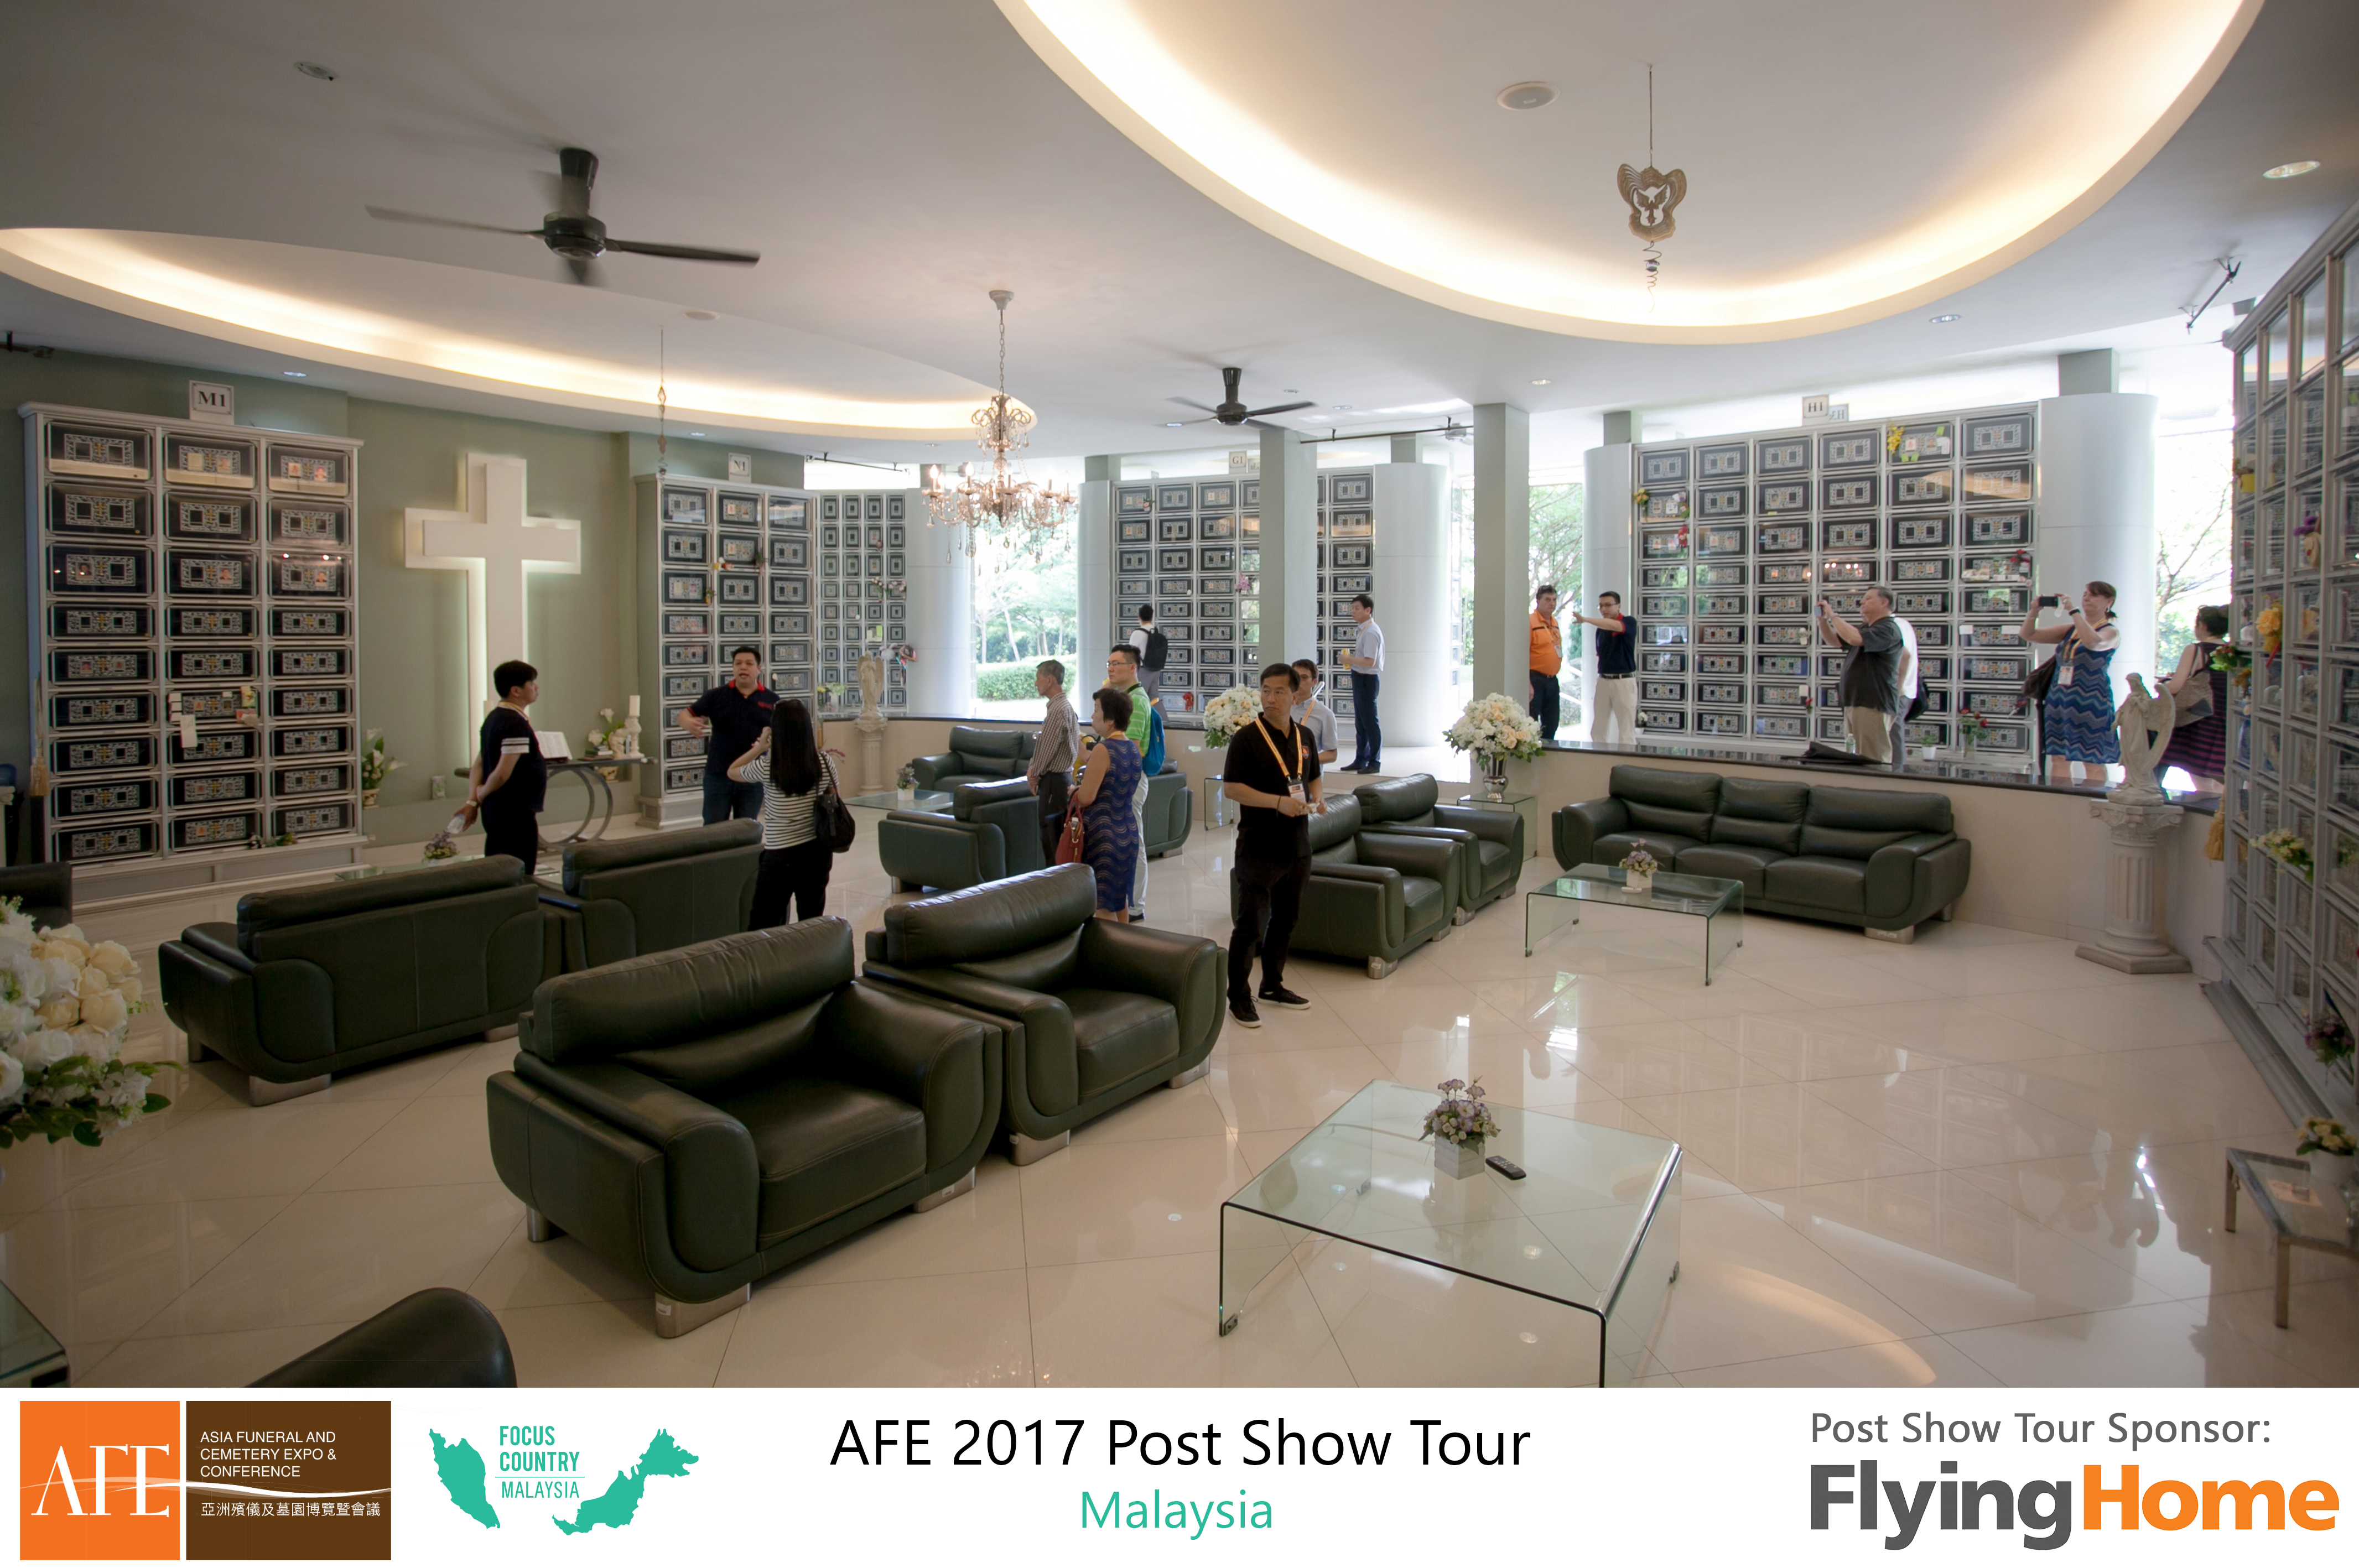 AFE Post Show Tour 2017 Day 2 - 77